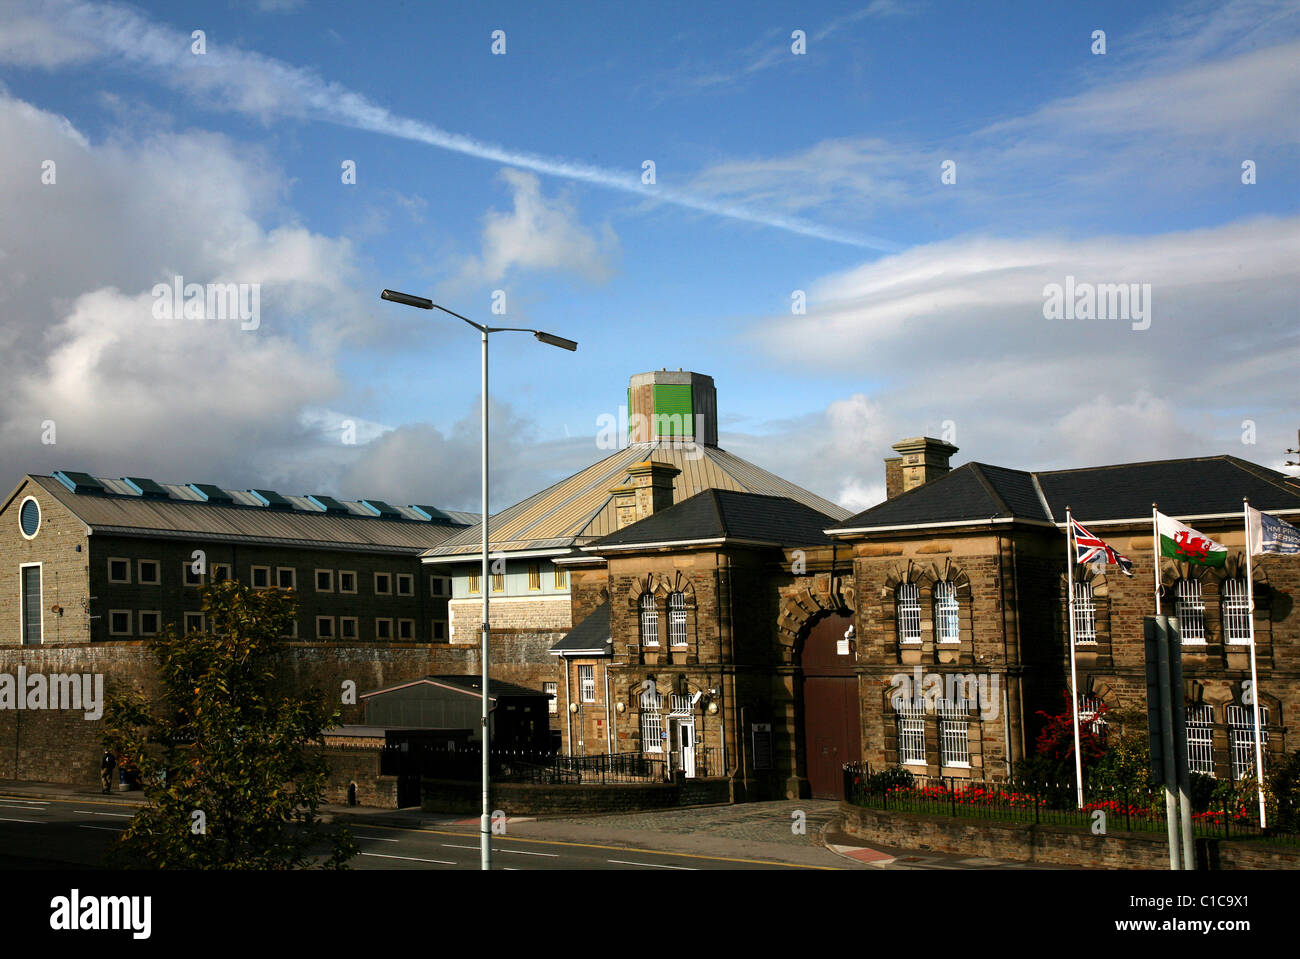 Swansea's most undesirable residence - the Gaol, 200 Oystermouth Rd, Swansea. - Stock Image